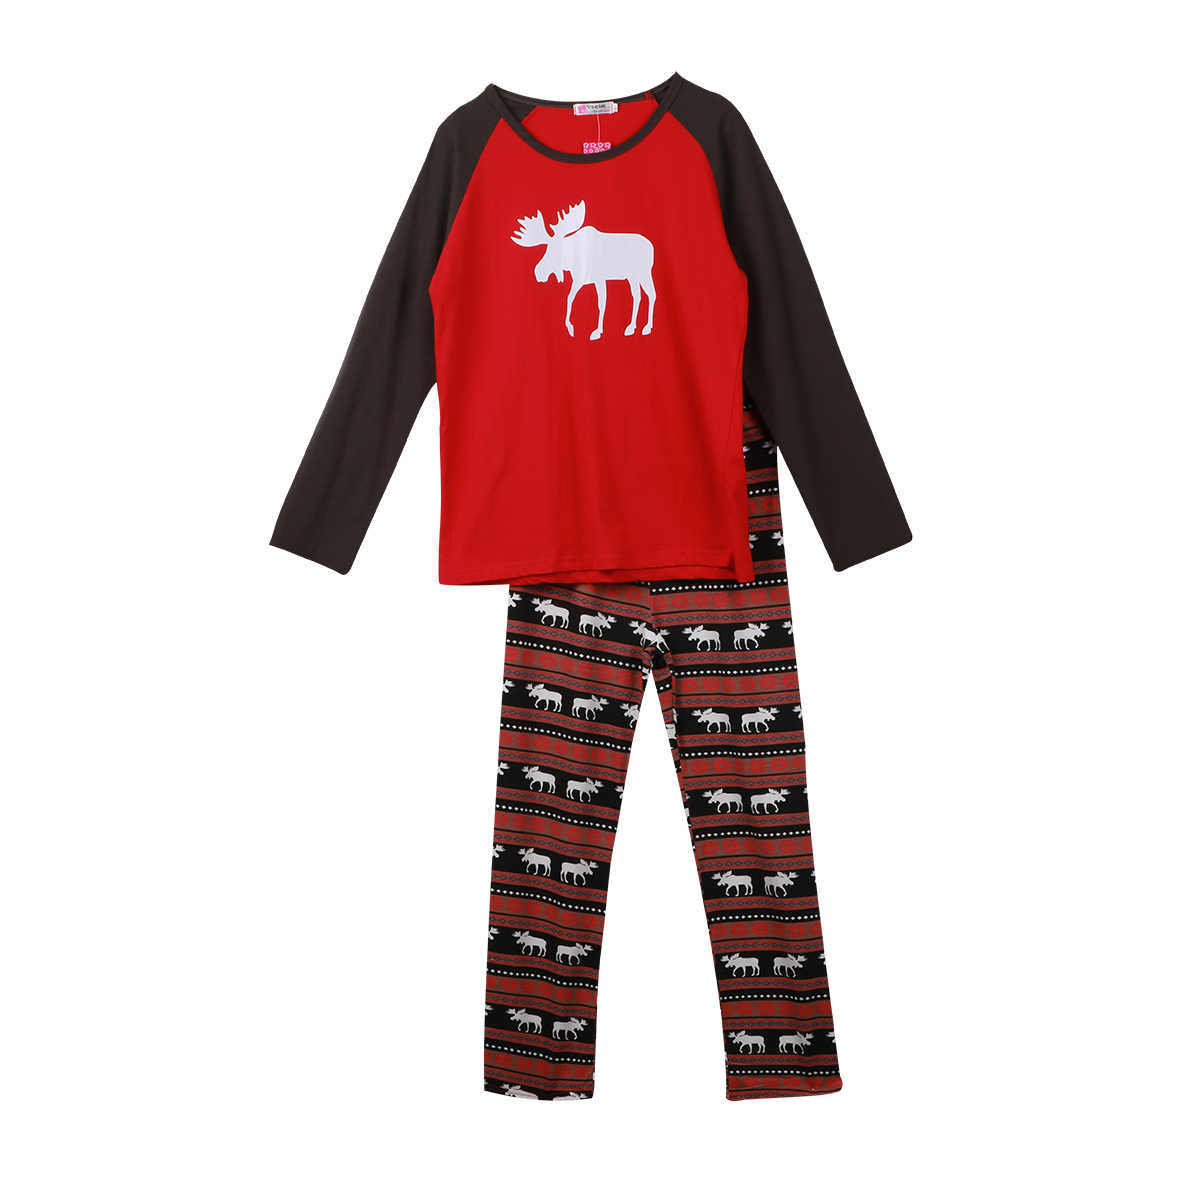 c390bca5a Detail Feedback Questions about Family Pajamas Set Moose Adult Women ...